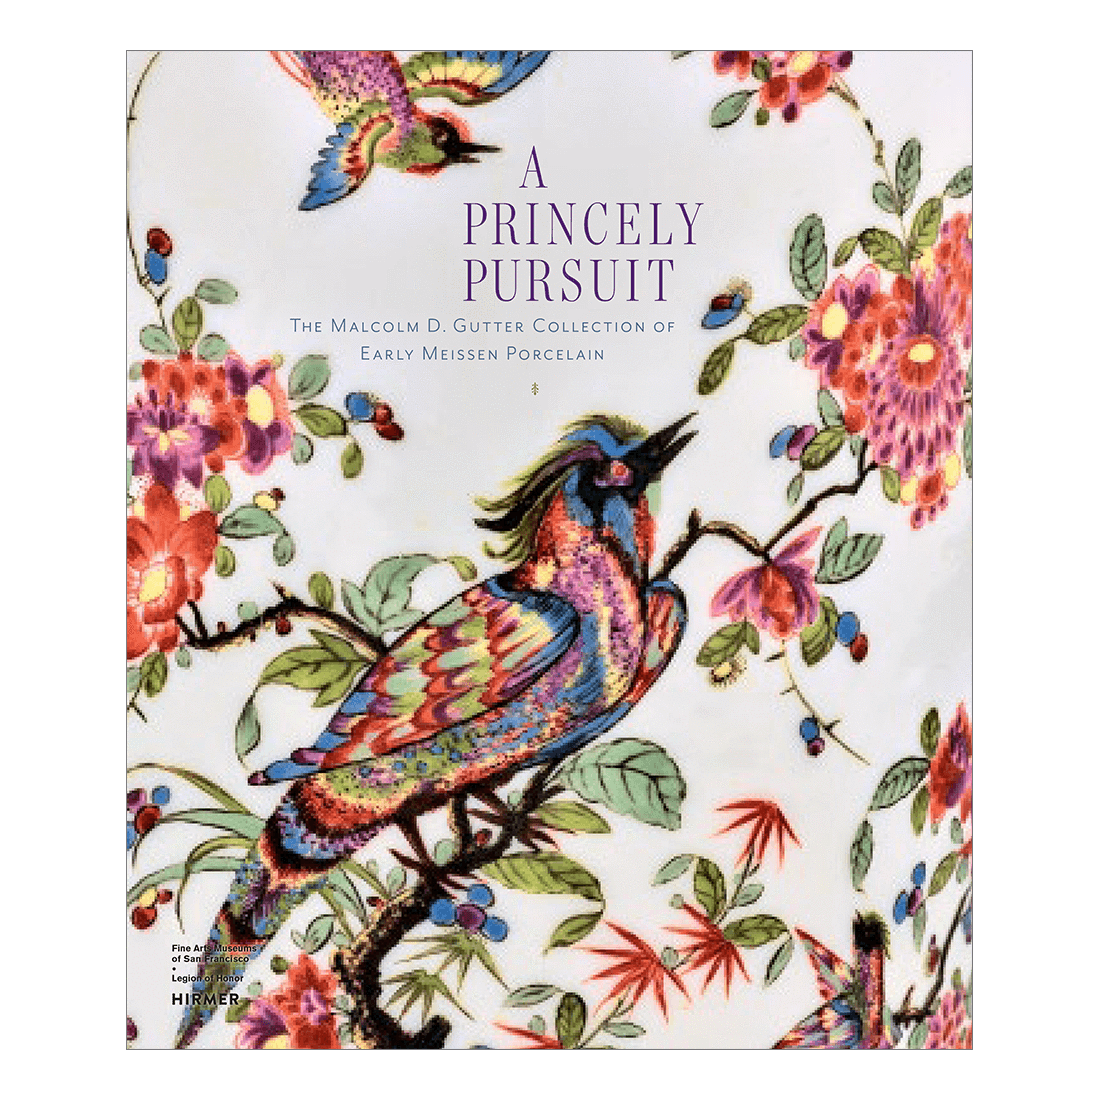 A Princely Pursuit: The Malcolm D. Gutter Collection of Early Meissen Porcelain